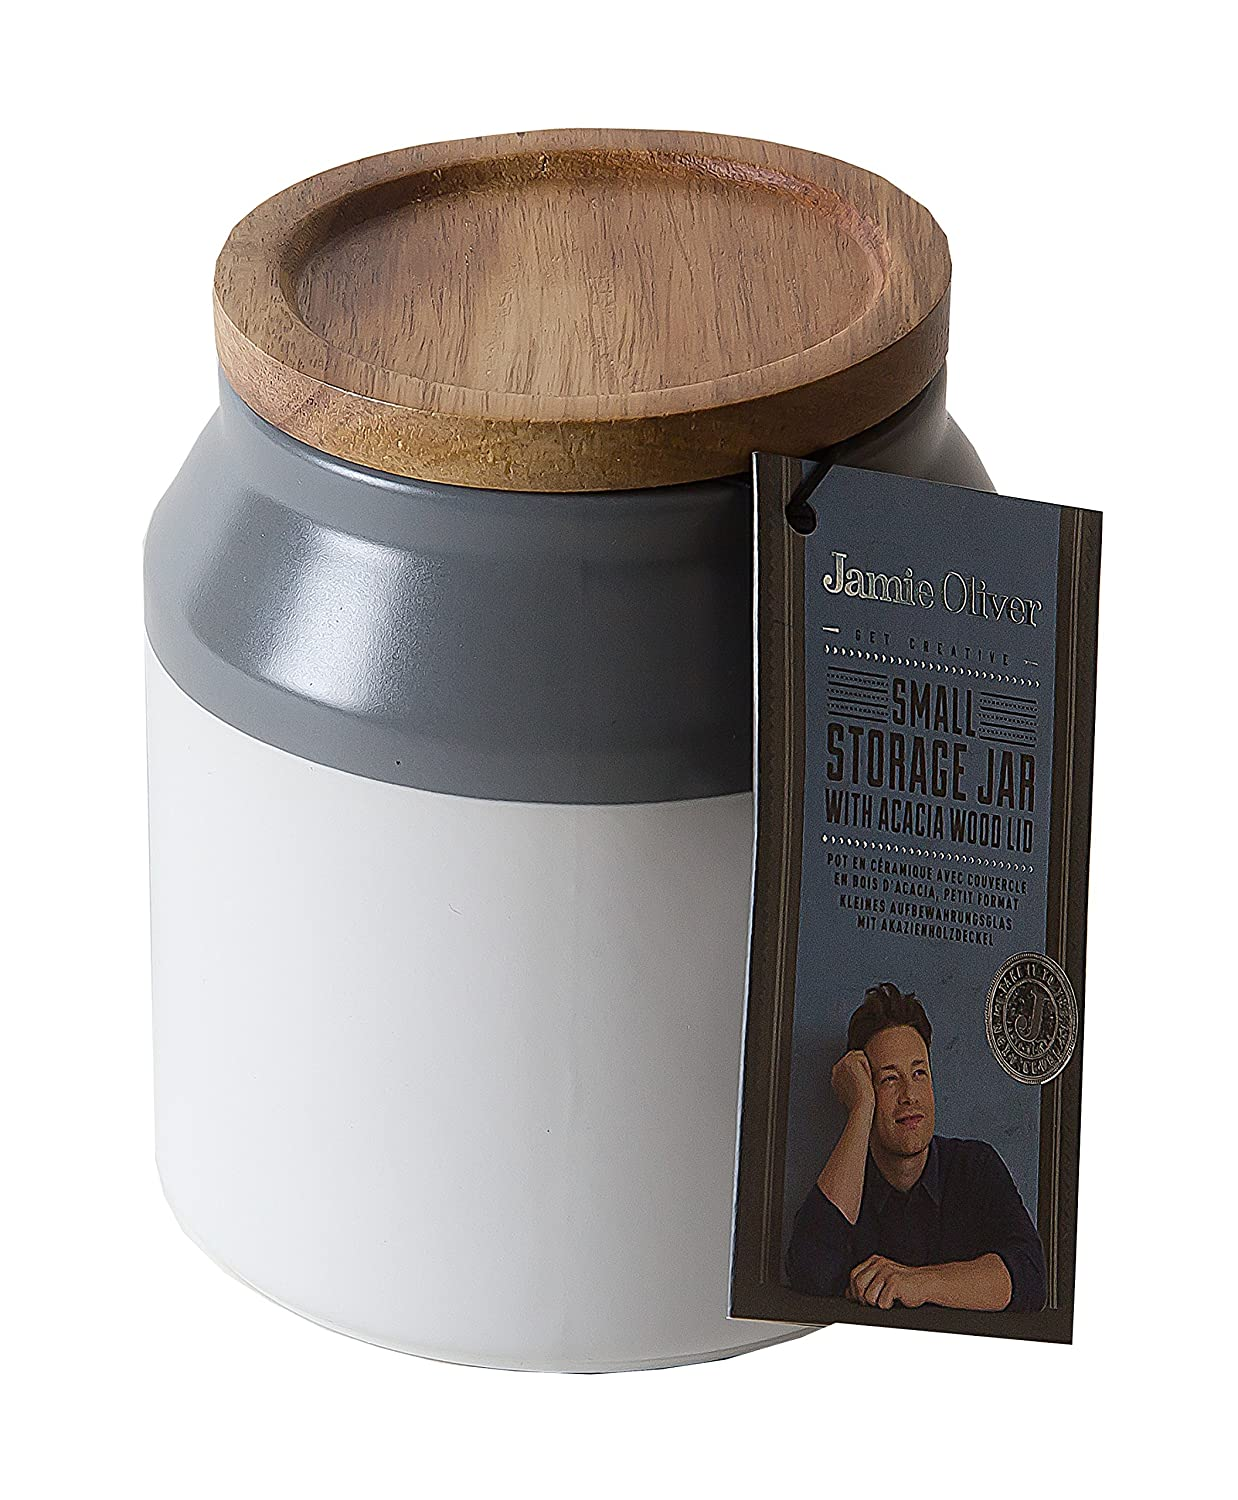 Jamie Oliver Food Storage Jar With Wooden Lid, Small Ceramic Kitchen  Container, Gray JB1110